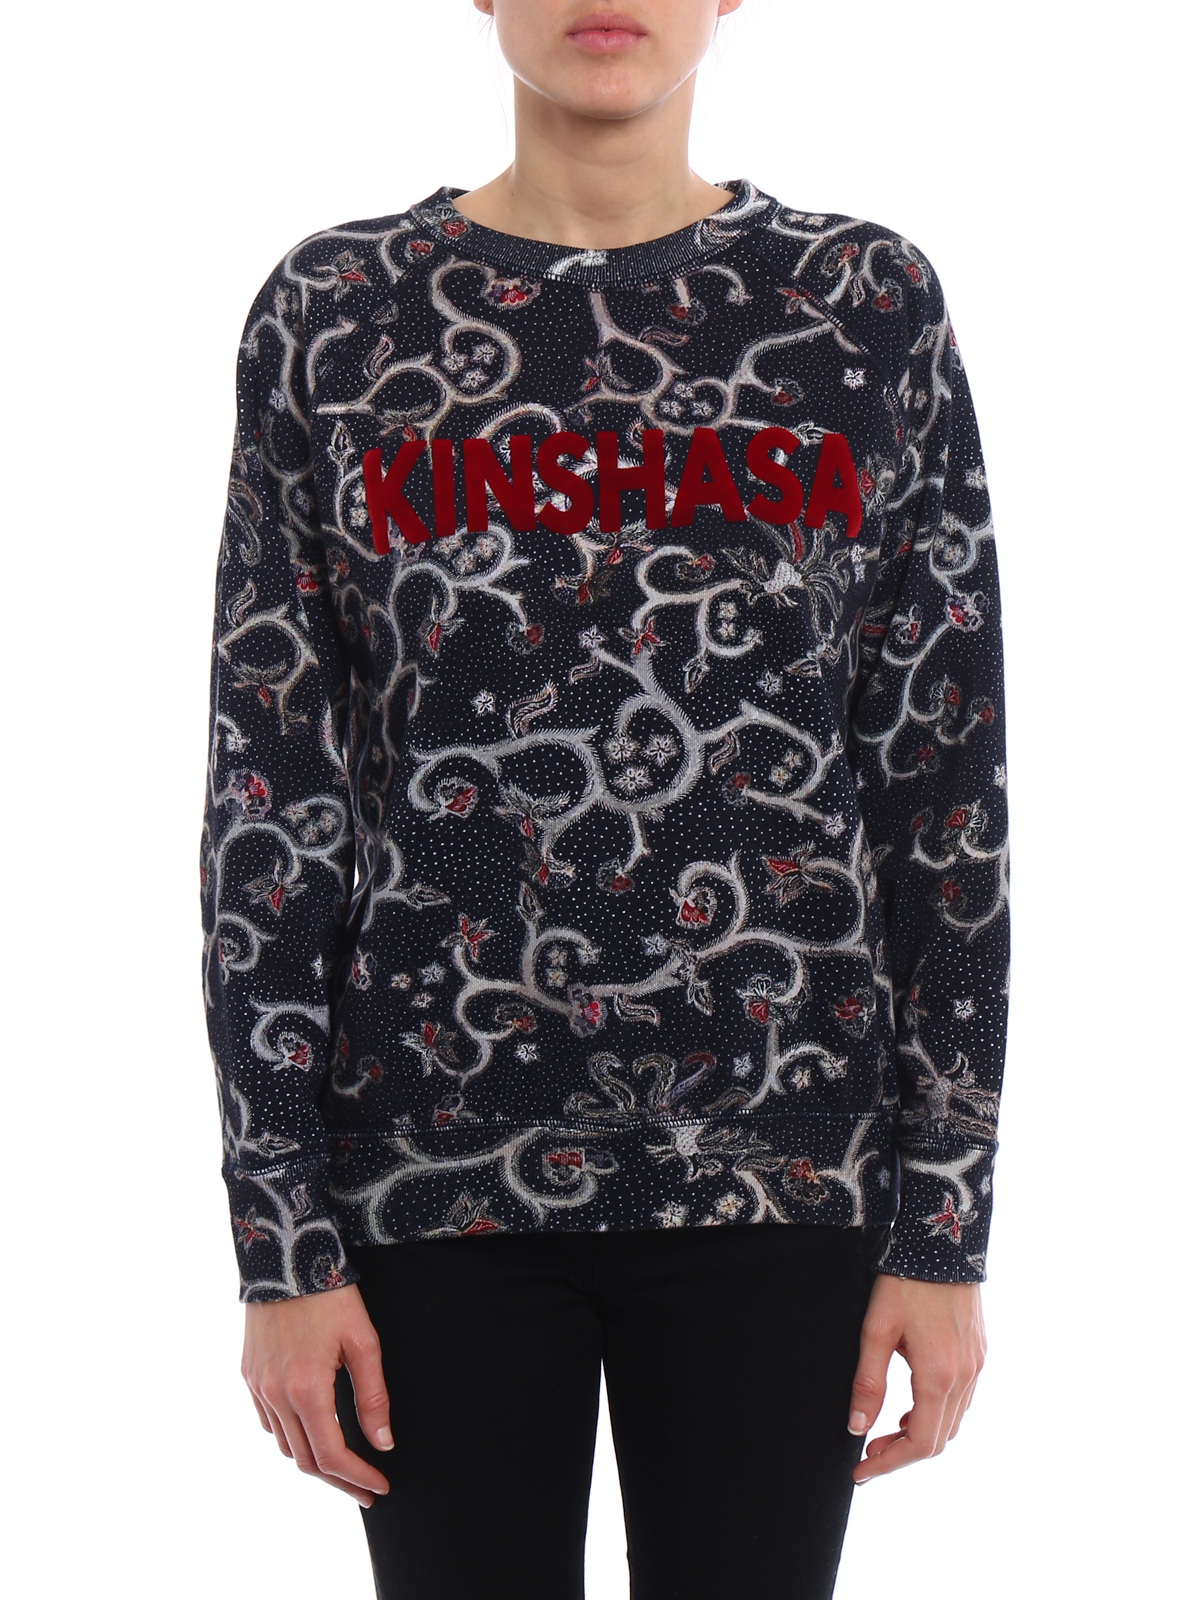 Outlet Footlocker Pictures Perfect Black Xilo sweatshirt Isabel Marant Cheap Price Wholesale Price Clearance Best Seller aiI3Y